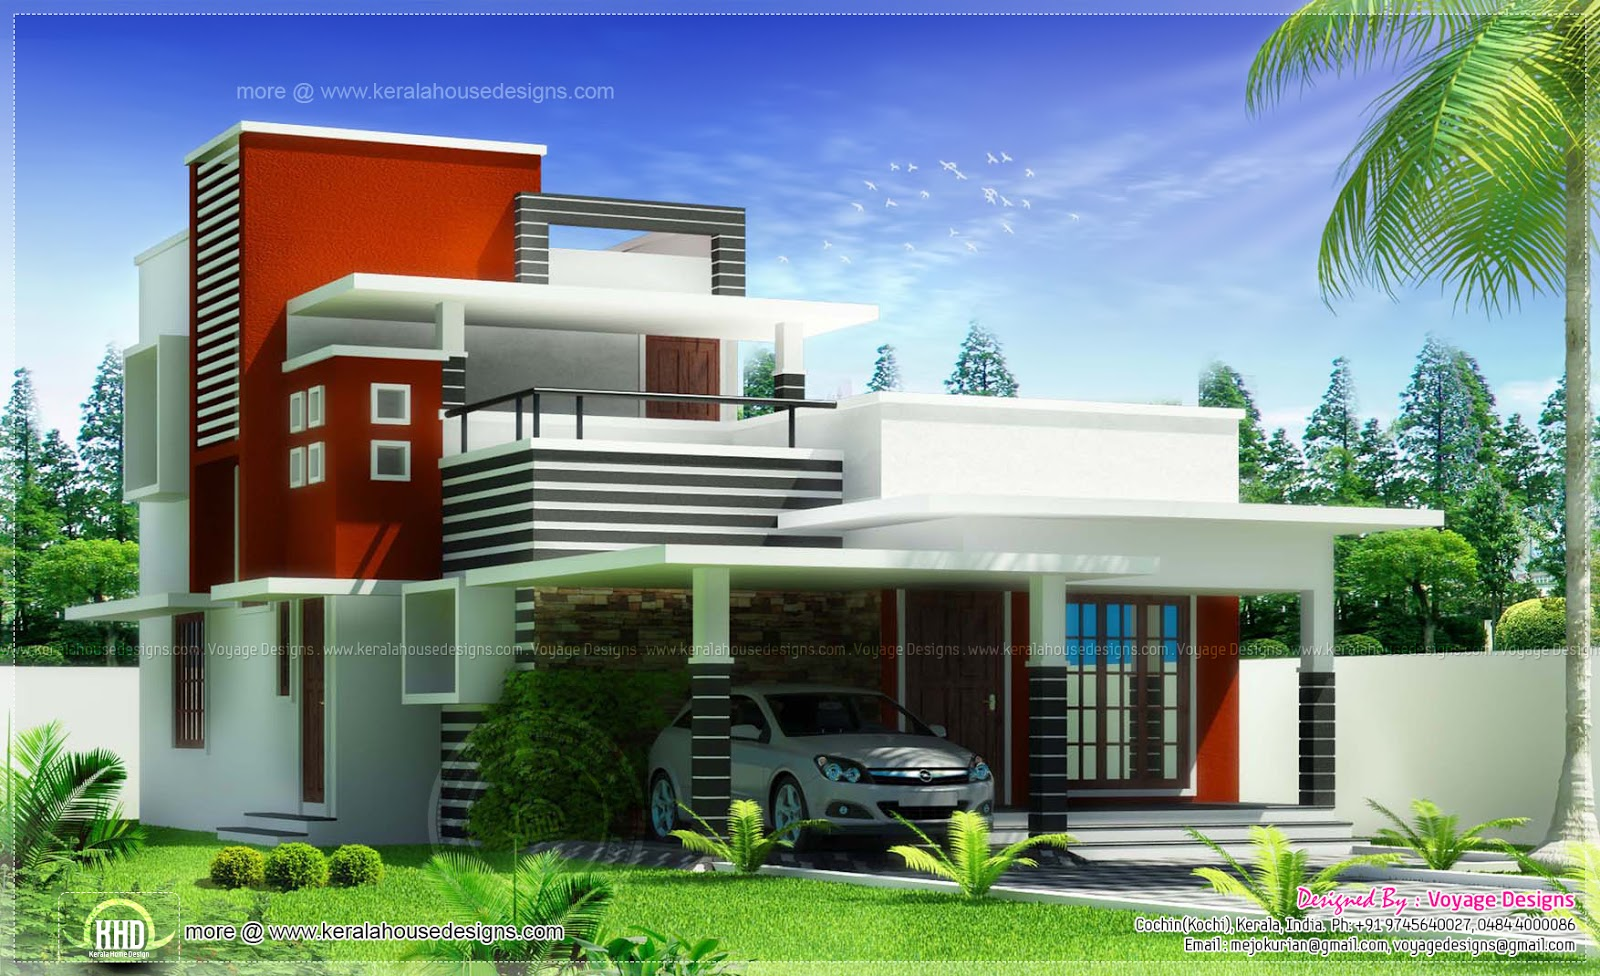 3 bed room contemporary style house home kerala plans for Modern looking homes